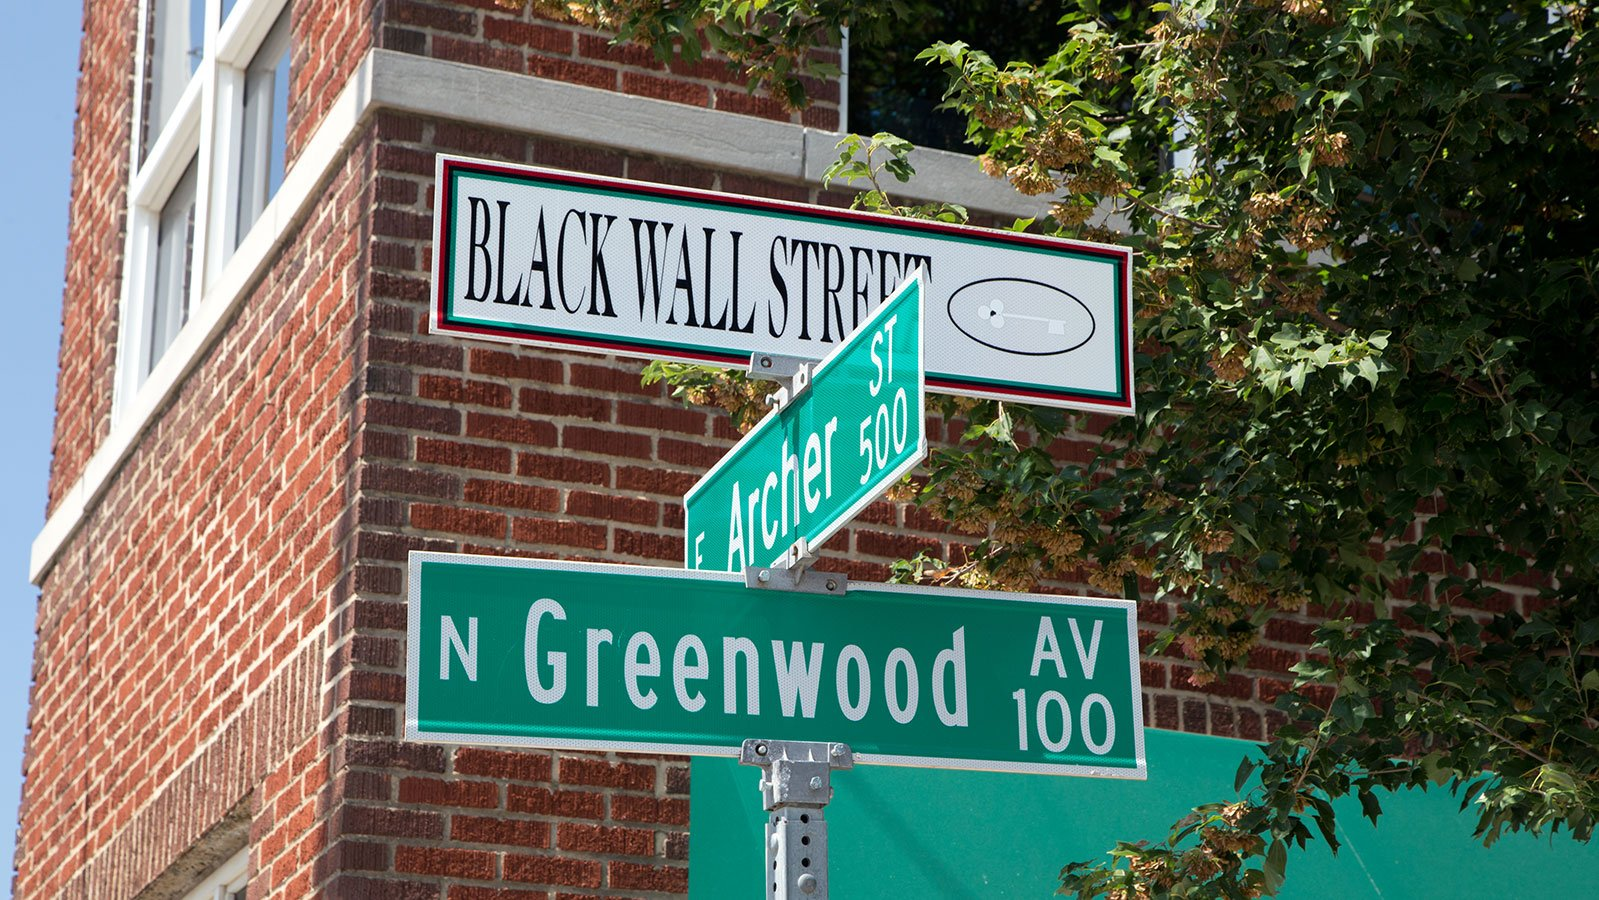 Street signs along Greenwood that commemorate Black Wall Street